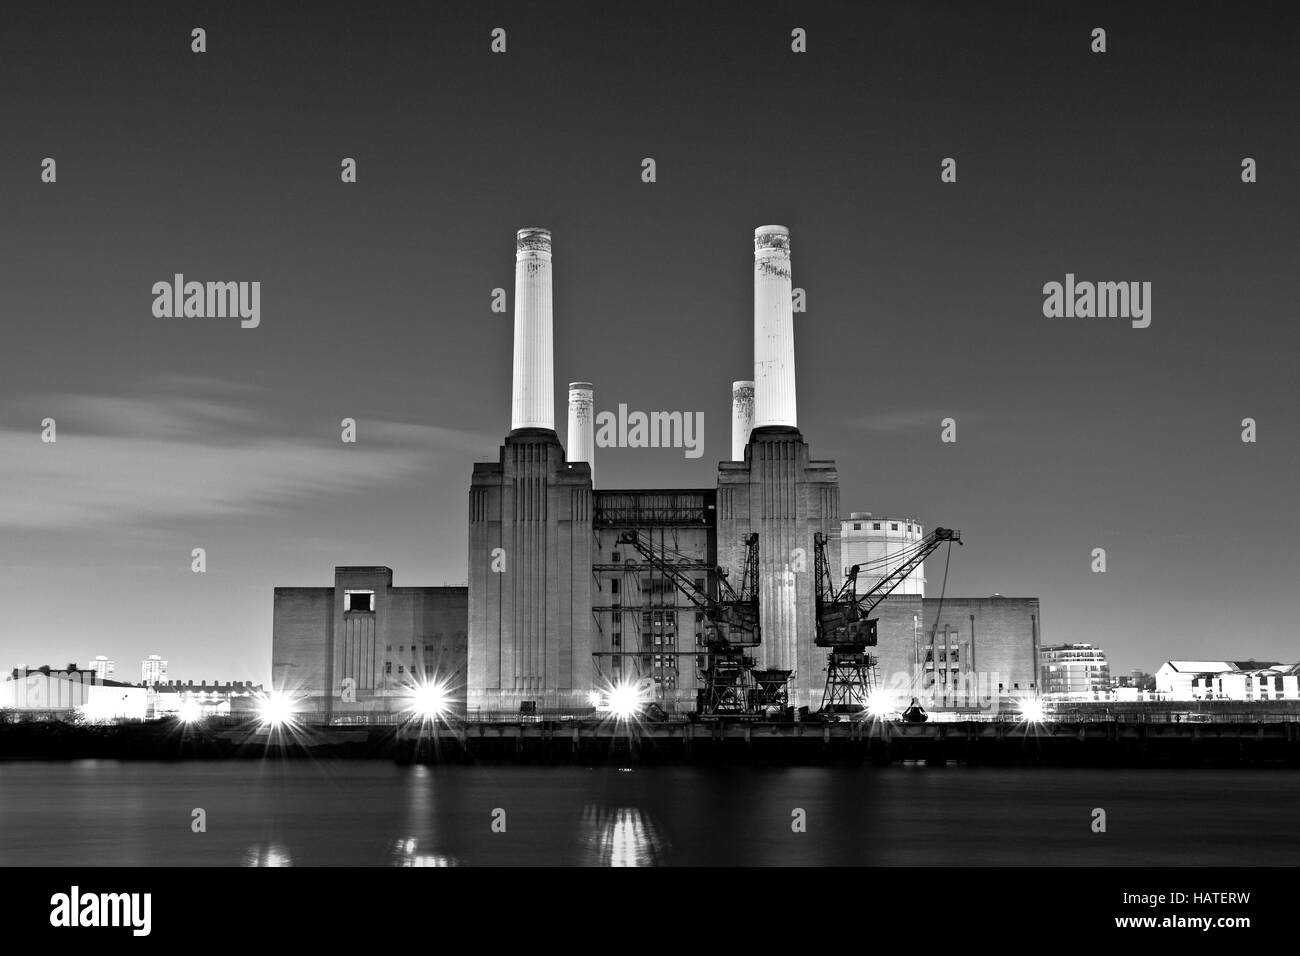 Battersea Power Station - Stock Image